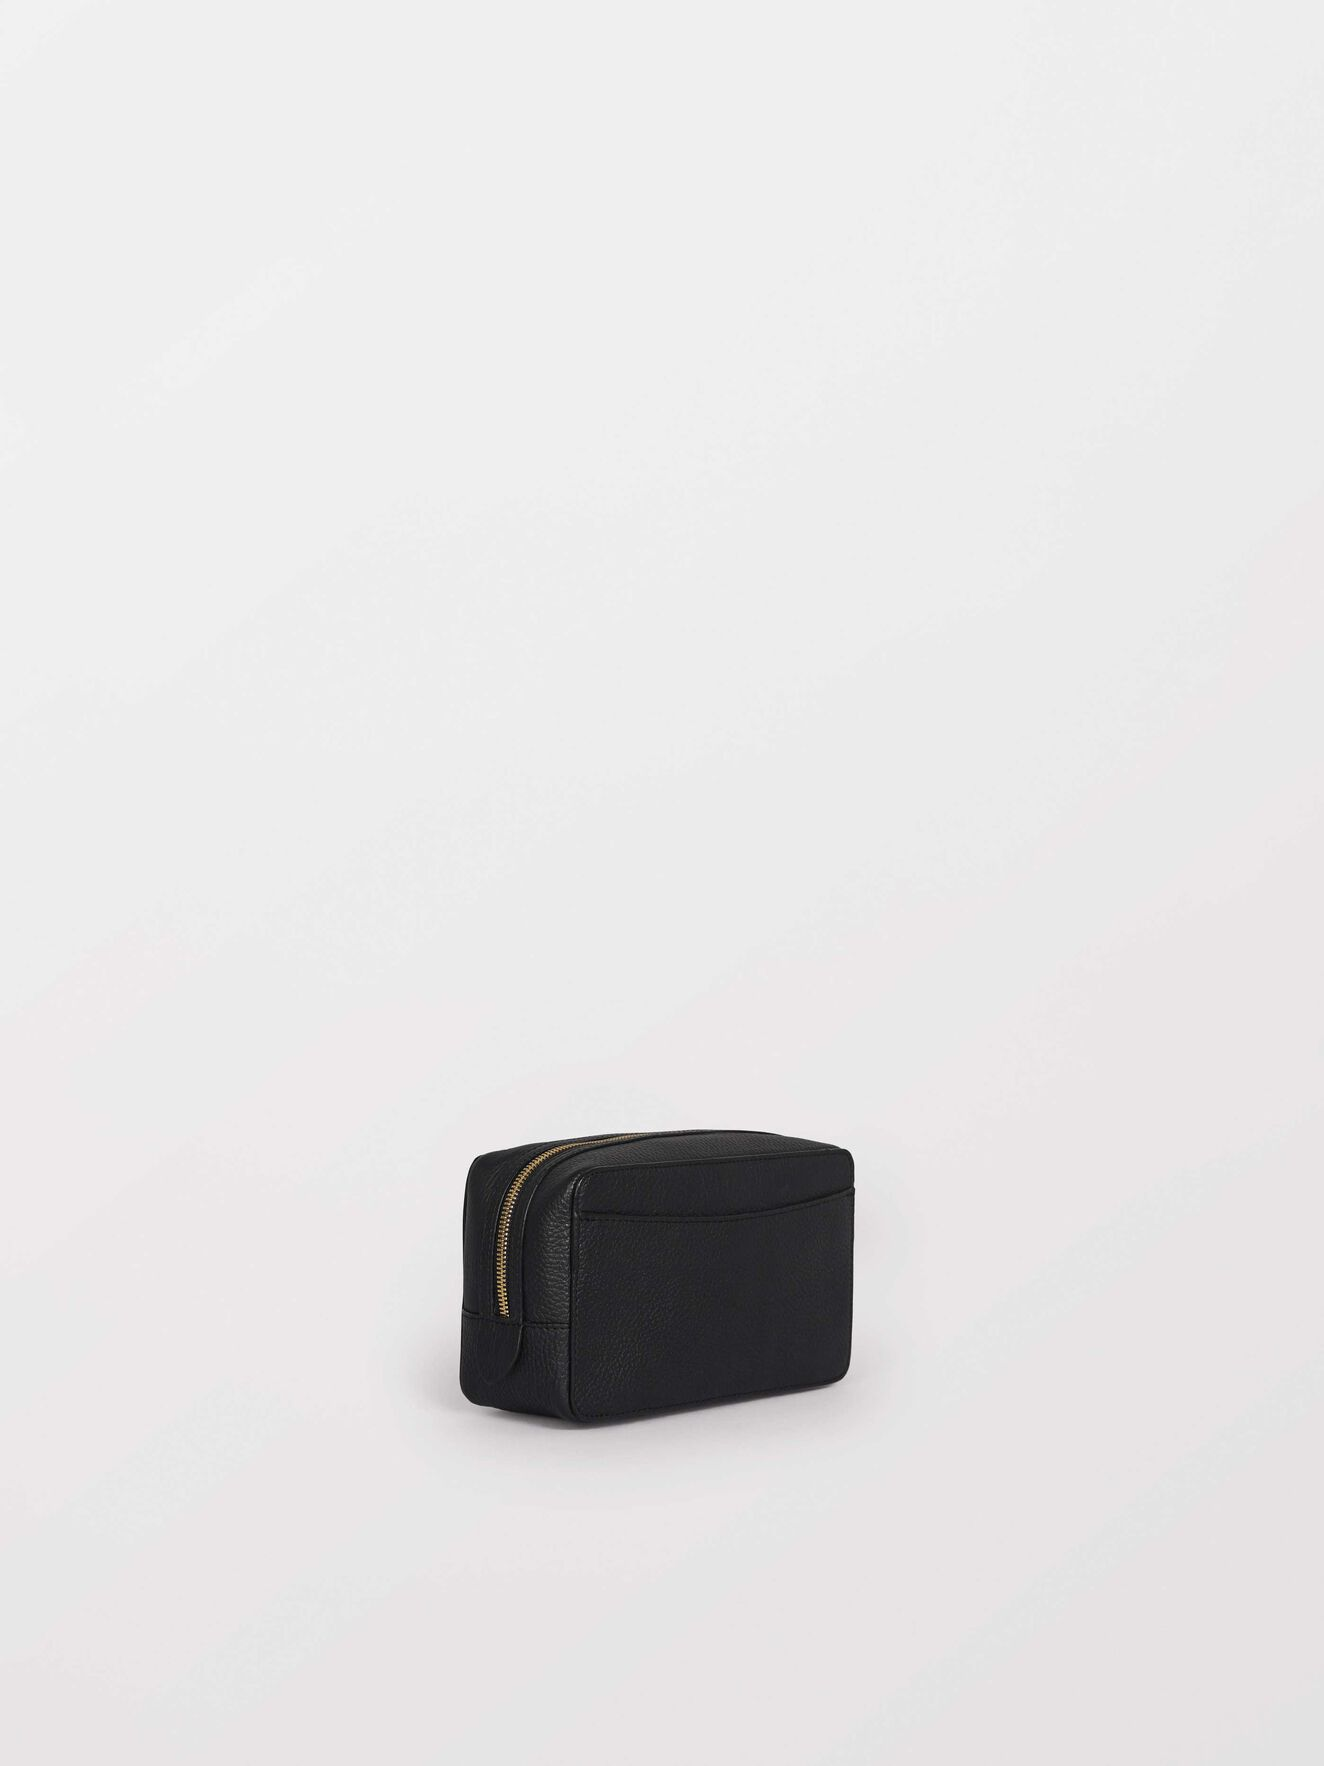 Wye Toiletry Bag in Black from Tiger of Sweden